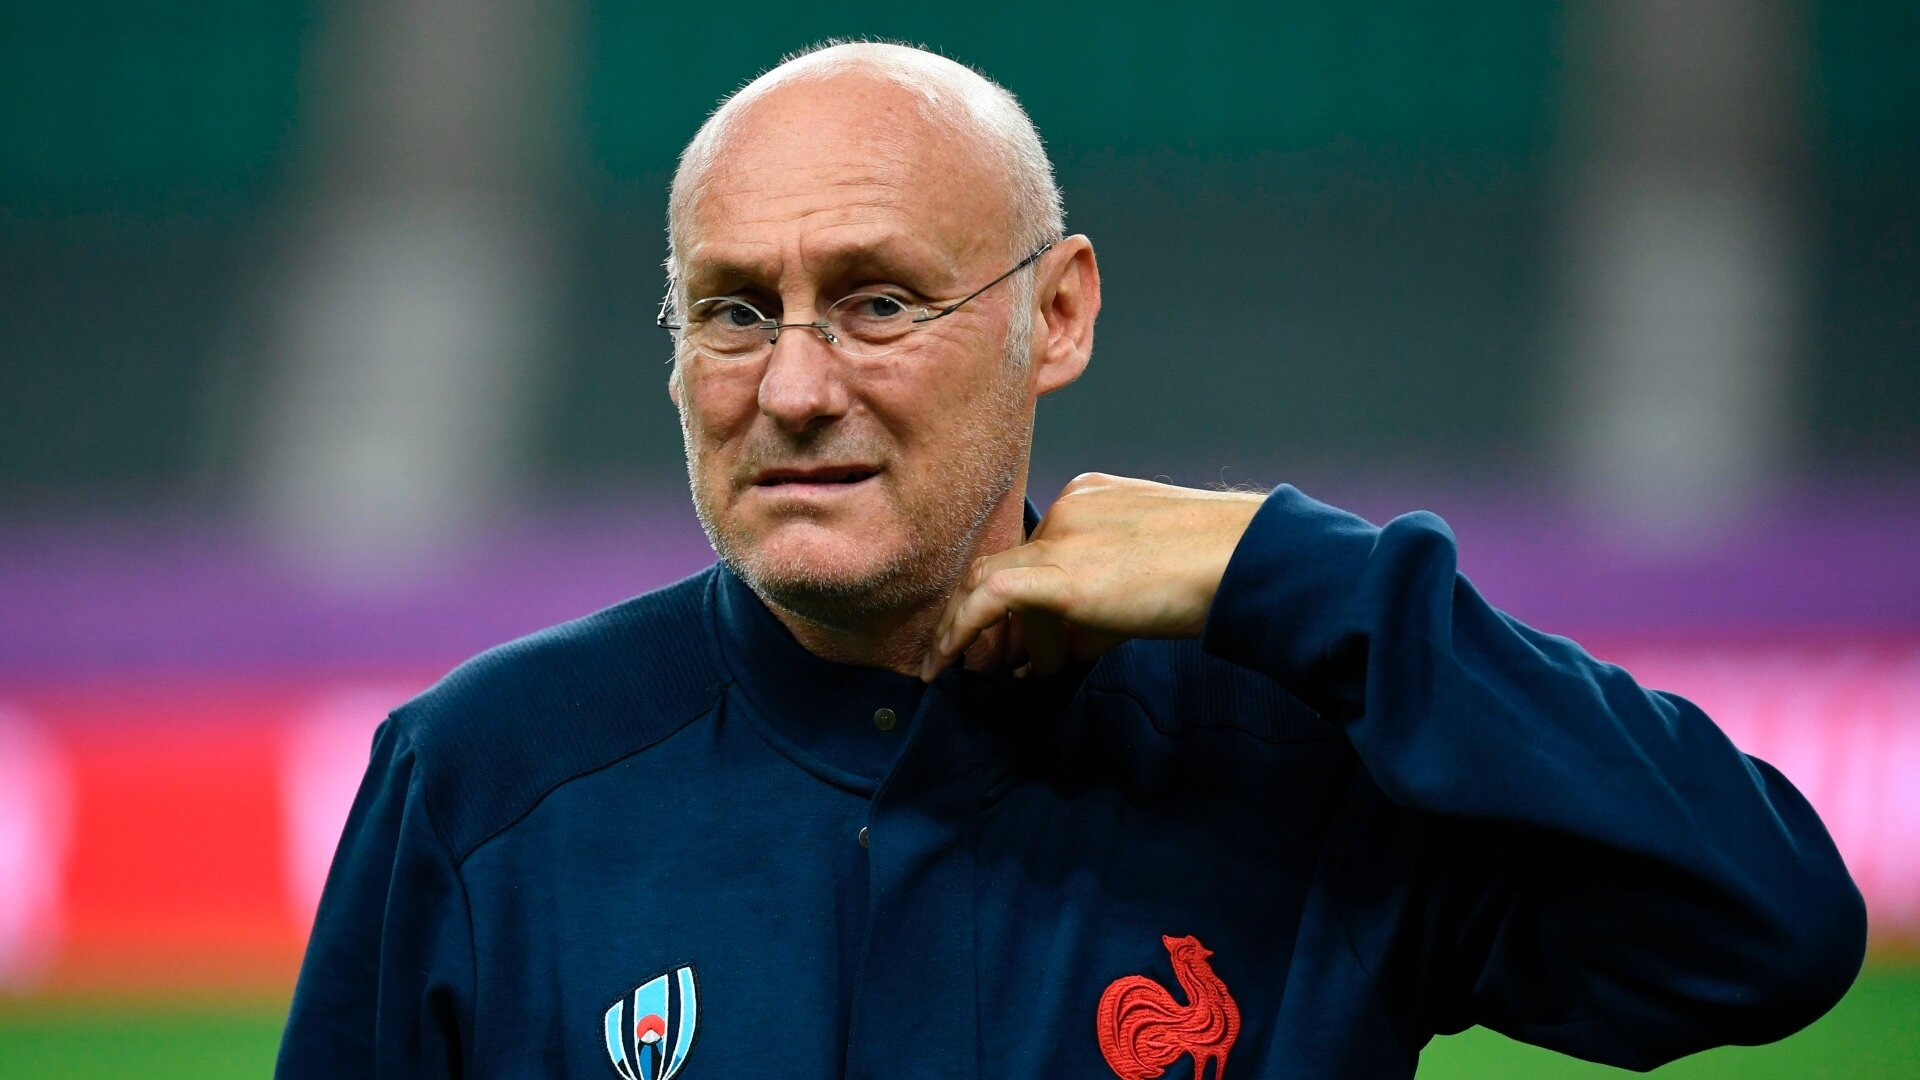 'I think we shouldn't be alarmed': French rugby boss Laporte confident Six Nations will go ahead as scheduled